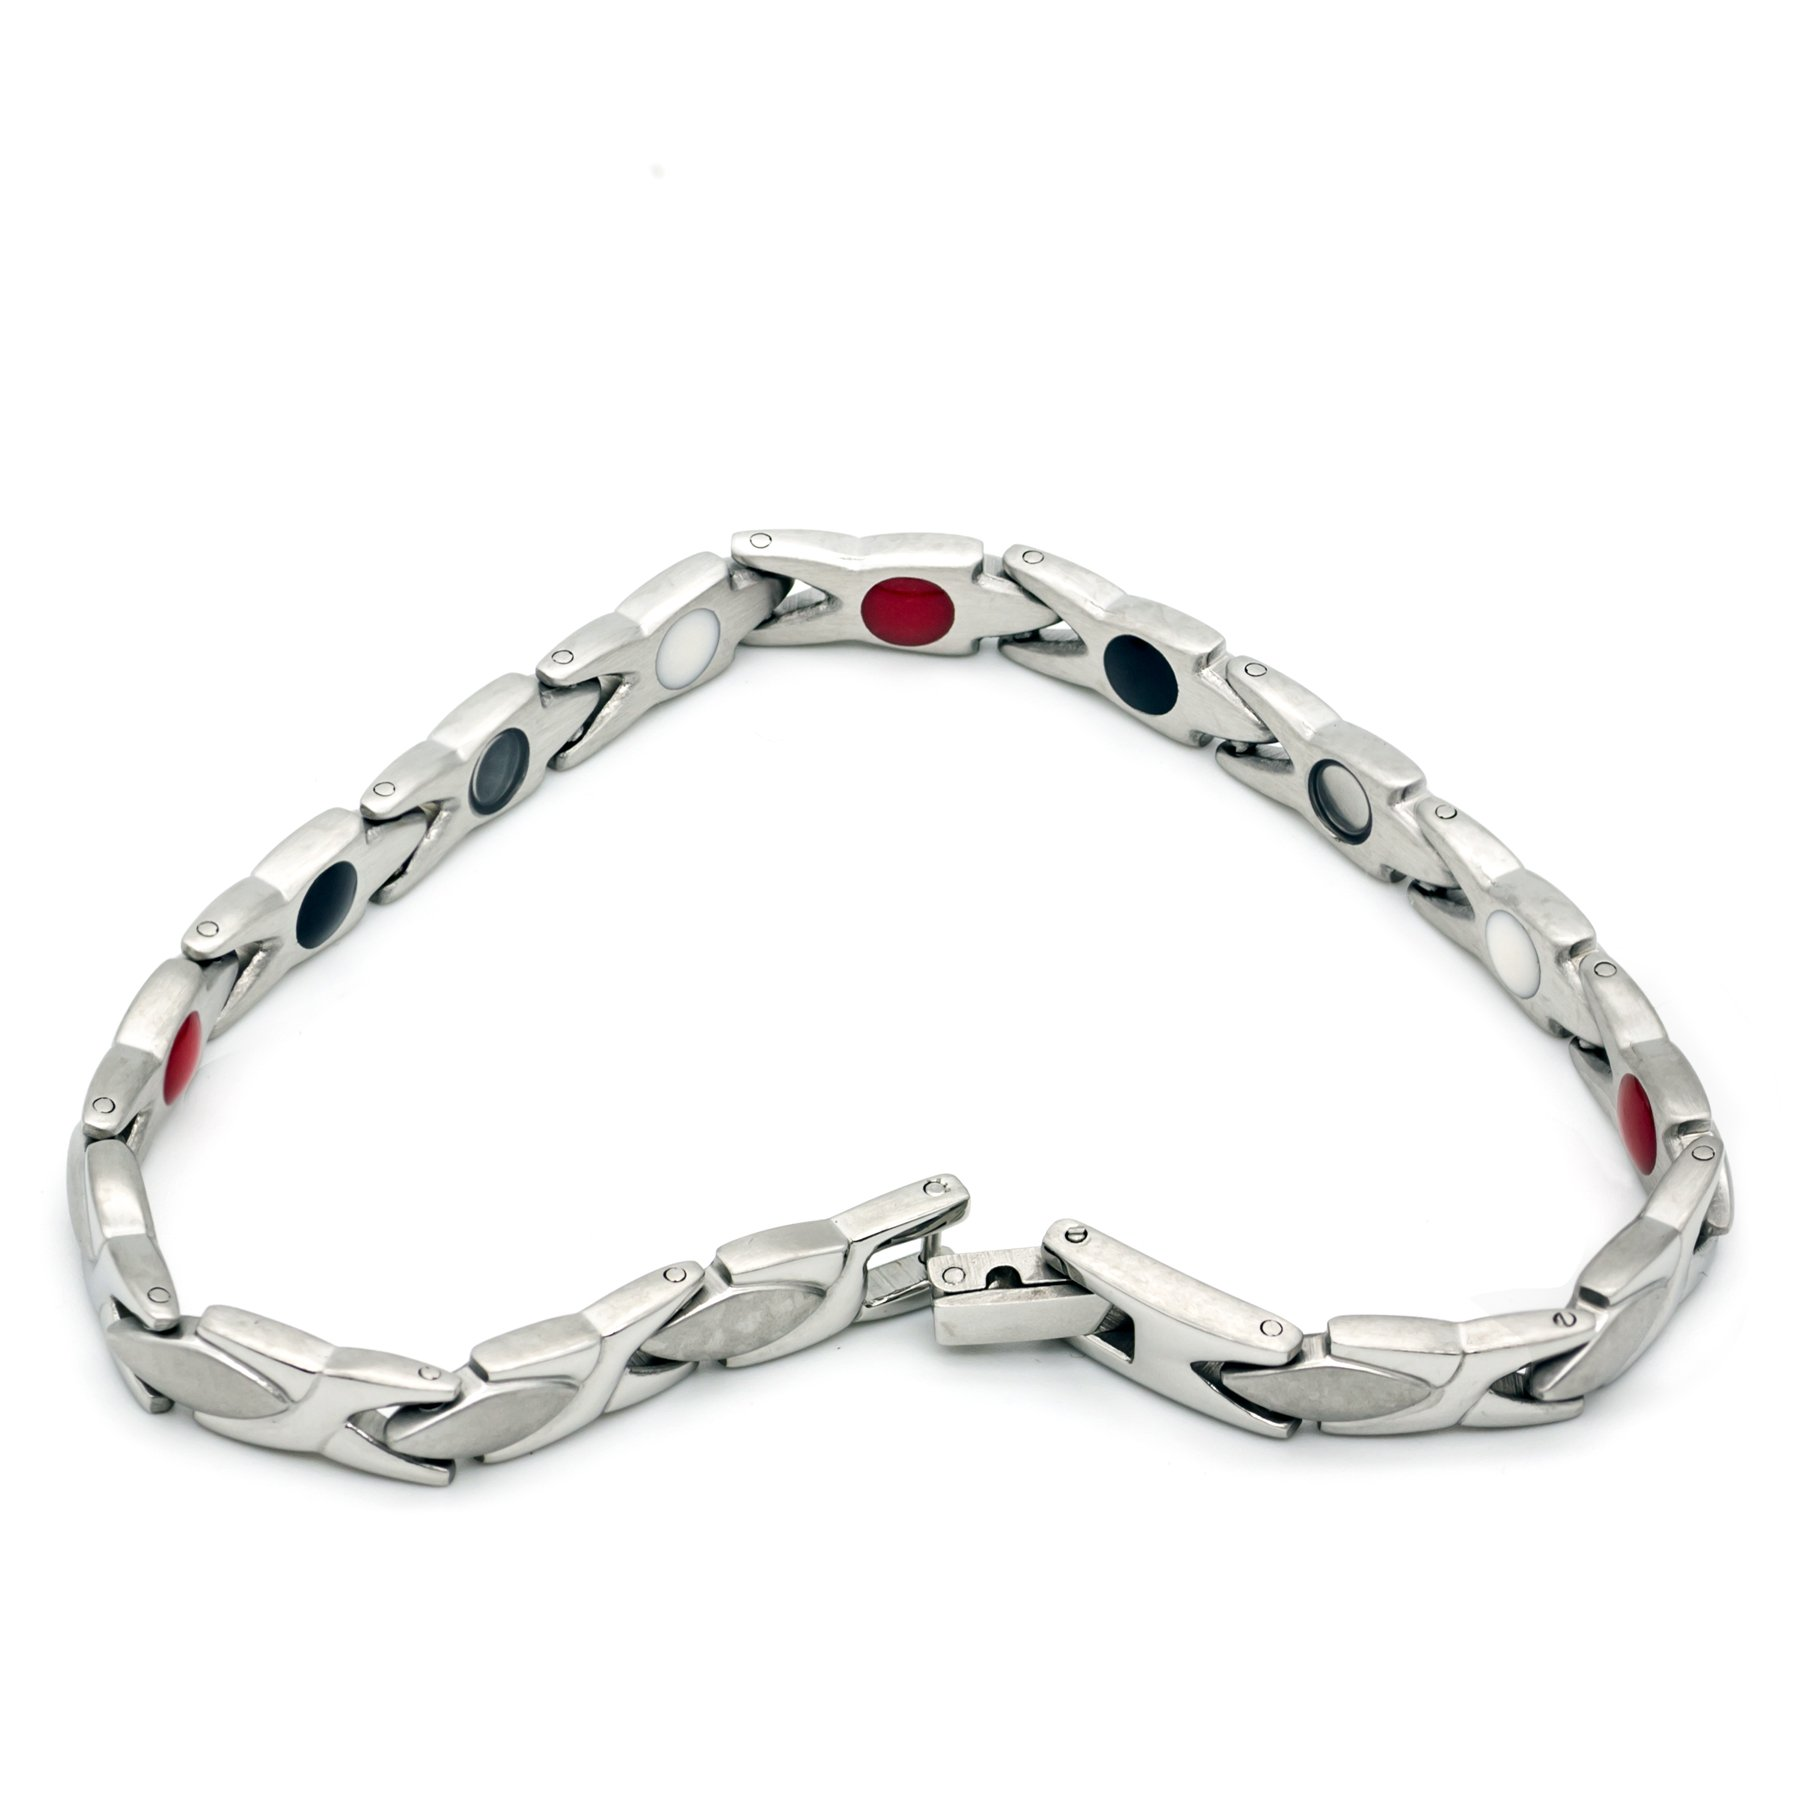 Colorful Bling Healthy Care Magnetic Stainless Steel Bio Germanium Bracelets Bangles for Women - Silver